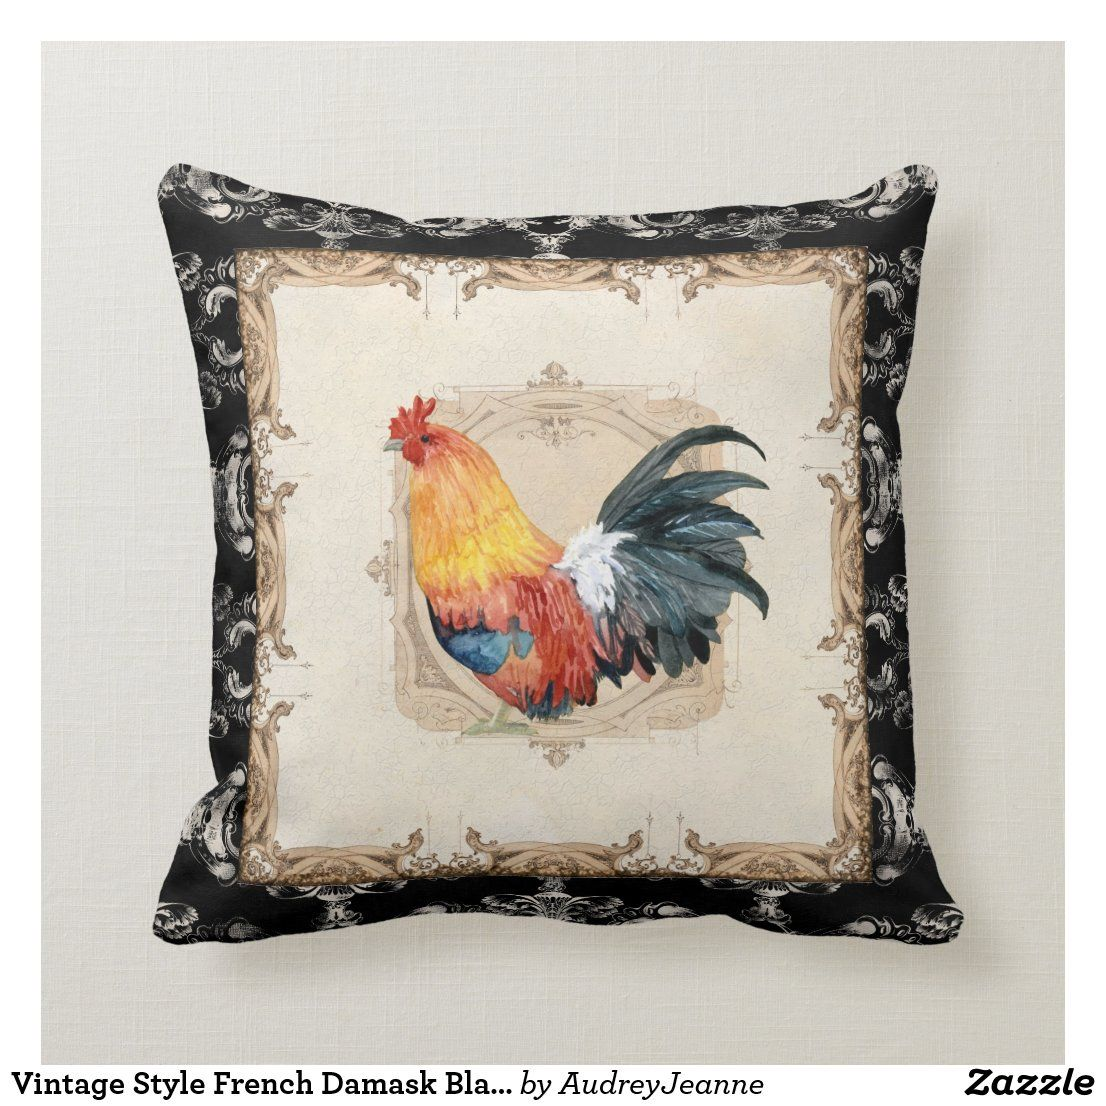 Tapestry Dragonfly Farmhouse Country Rooster Dogs Parrots Cushion Pillow Covers